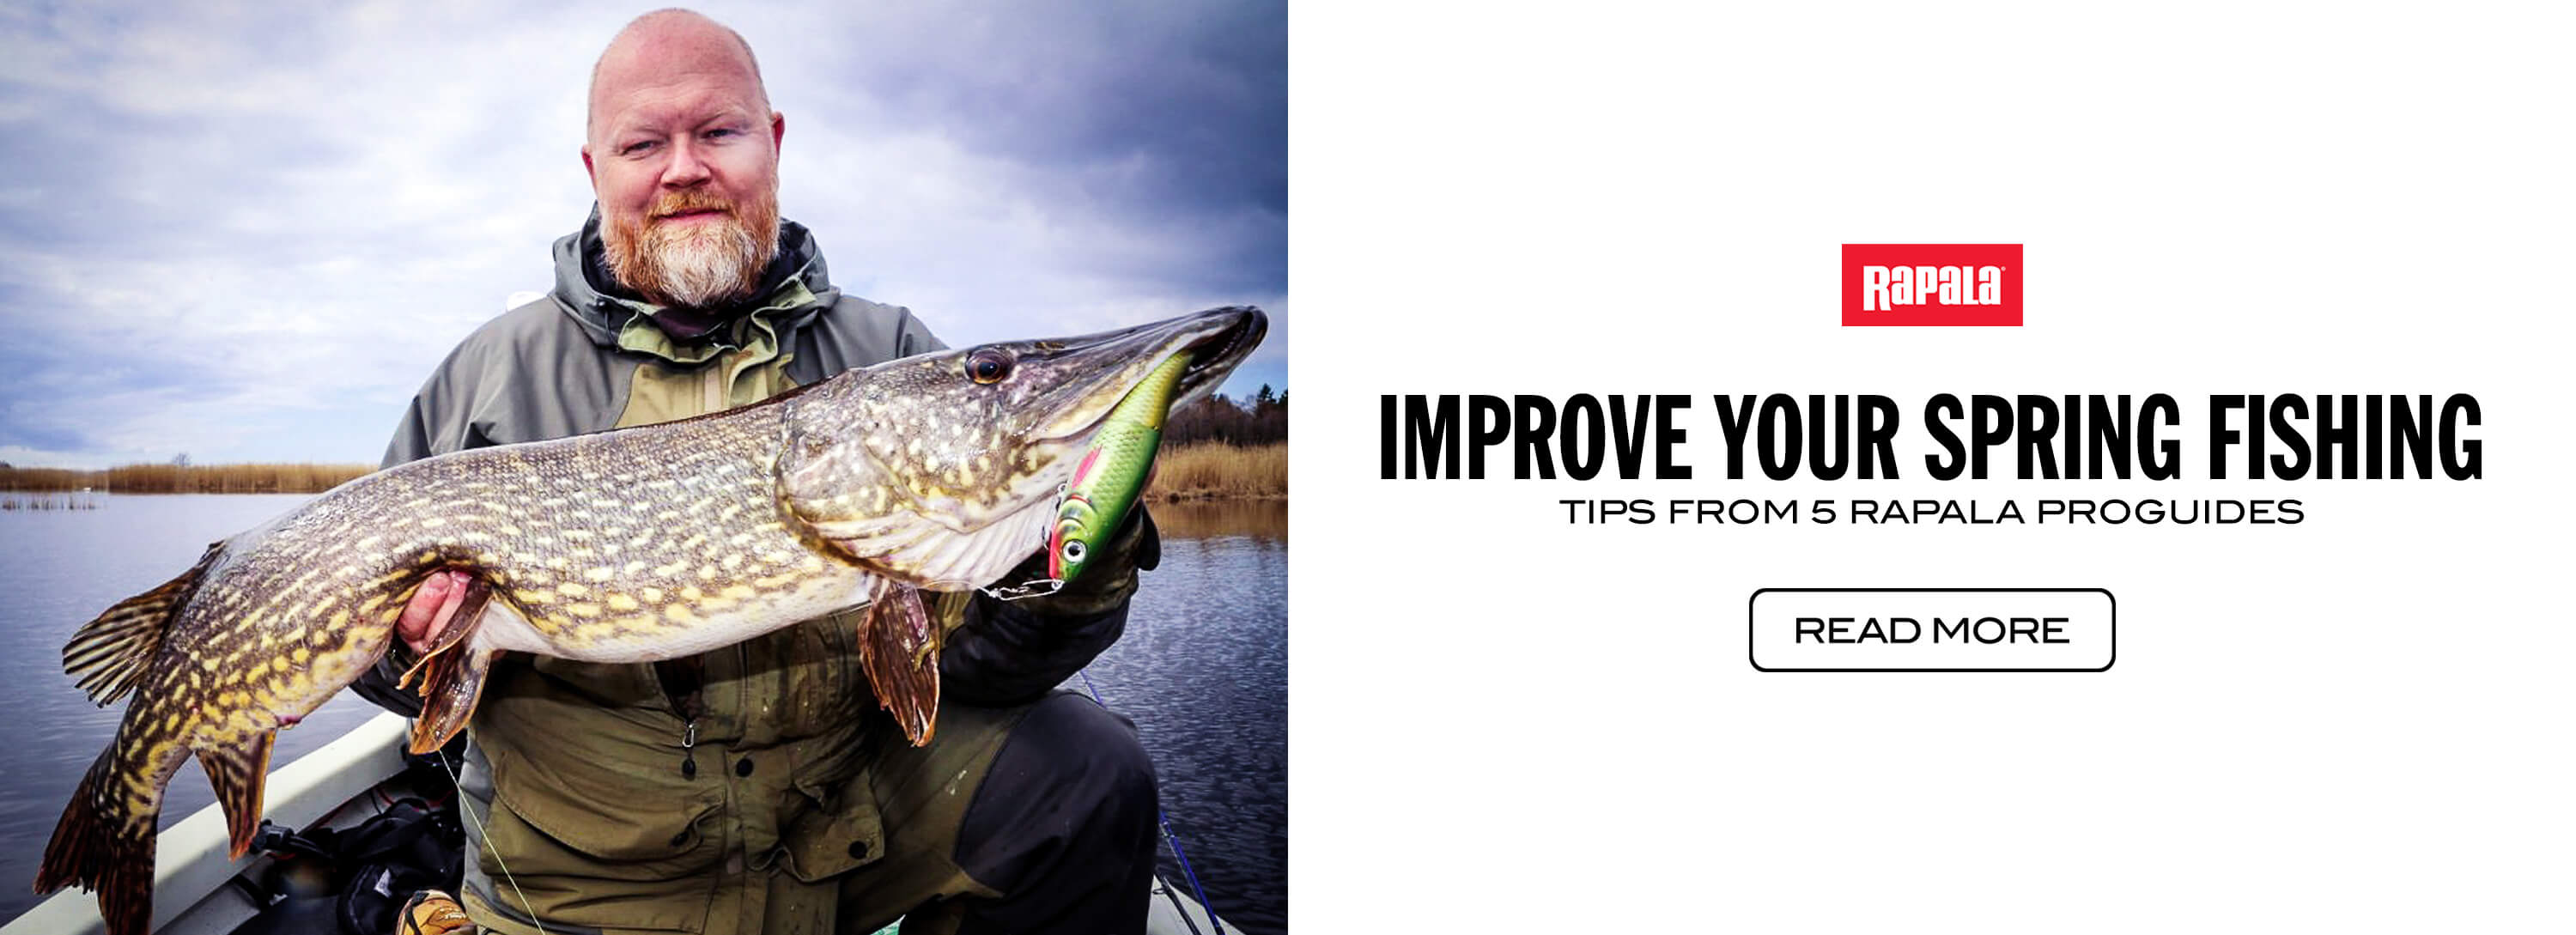 Improve your spring fishing